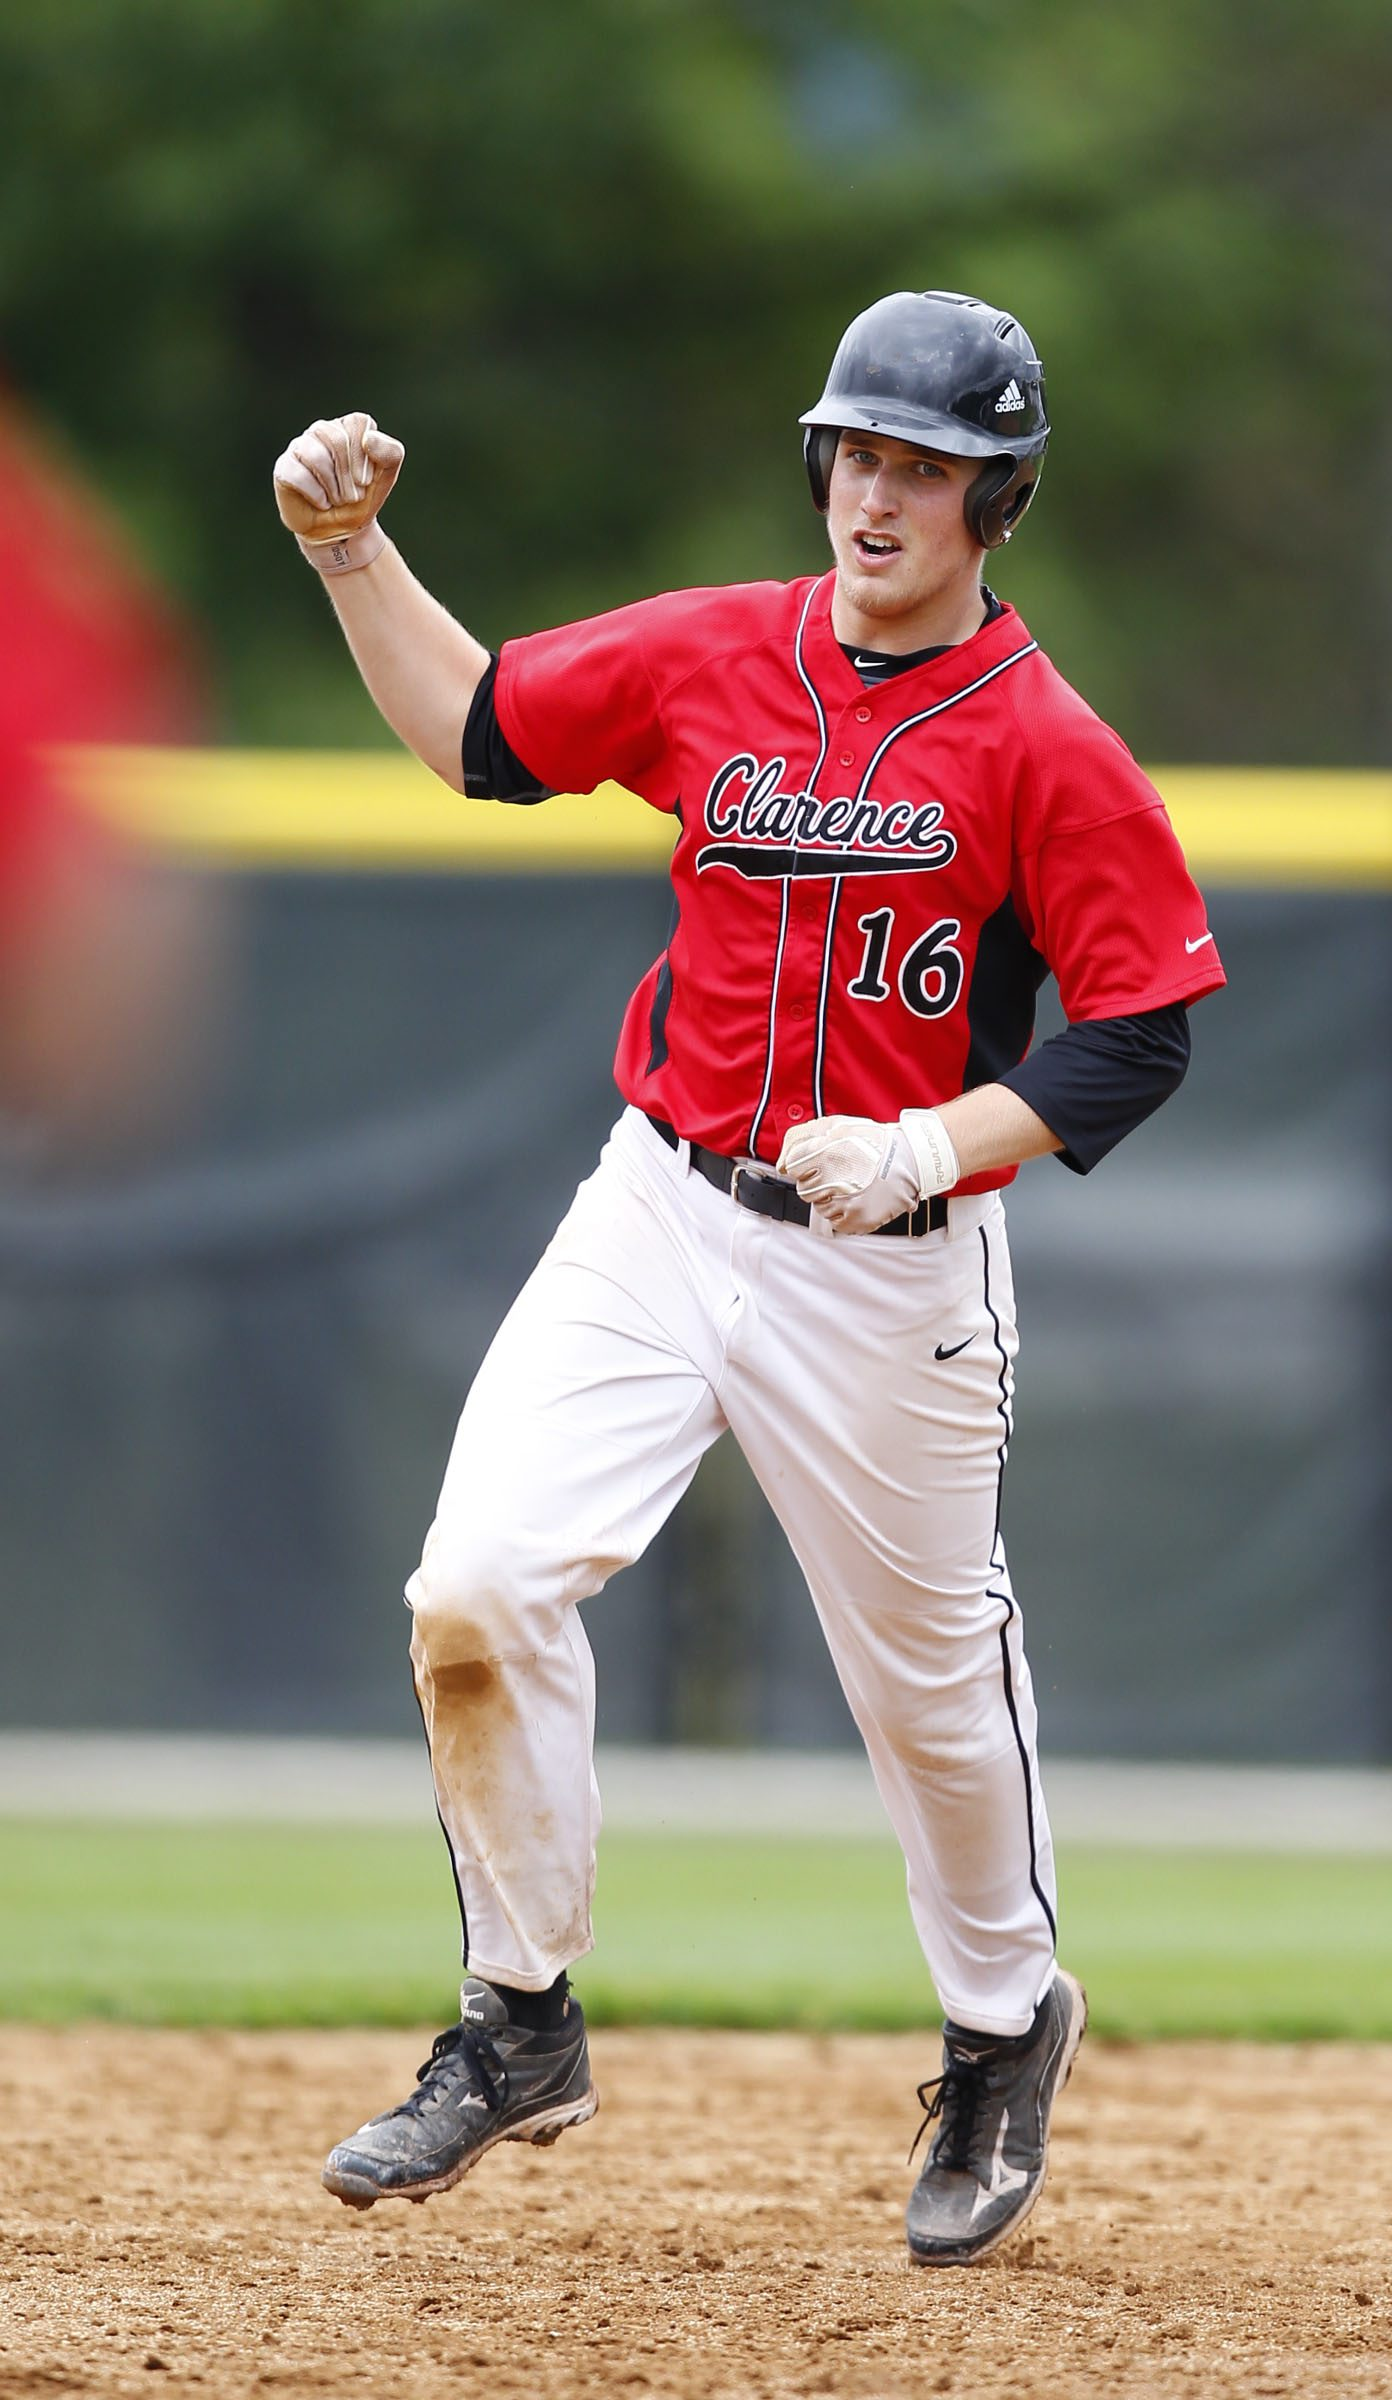 Clarence baseball player, Mark Armstrong, hits a home run and celebrates in 5th inning action, in State semi-final action against Arlington, at SUNY Binghamton, on Saturday, June 8, 2013.Clarence won 5-2.{Photo by Harry Scull Jr. / Buffalo News}